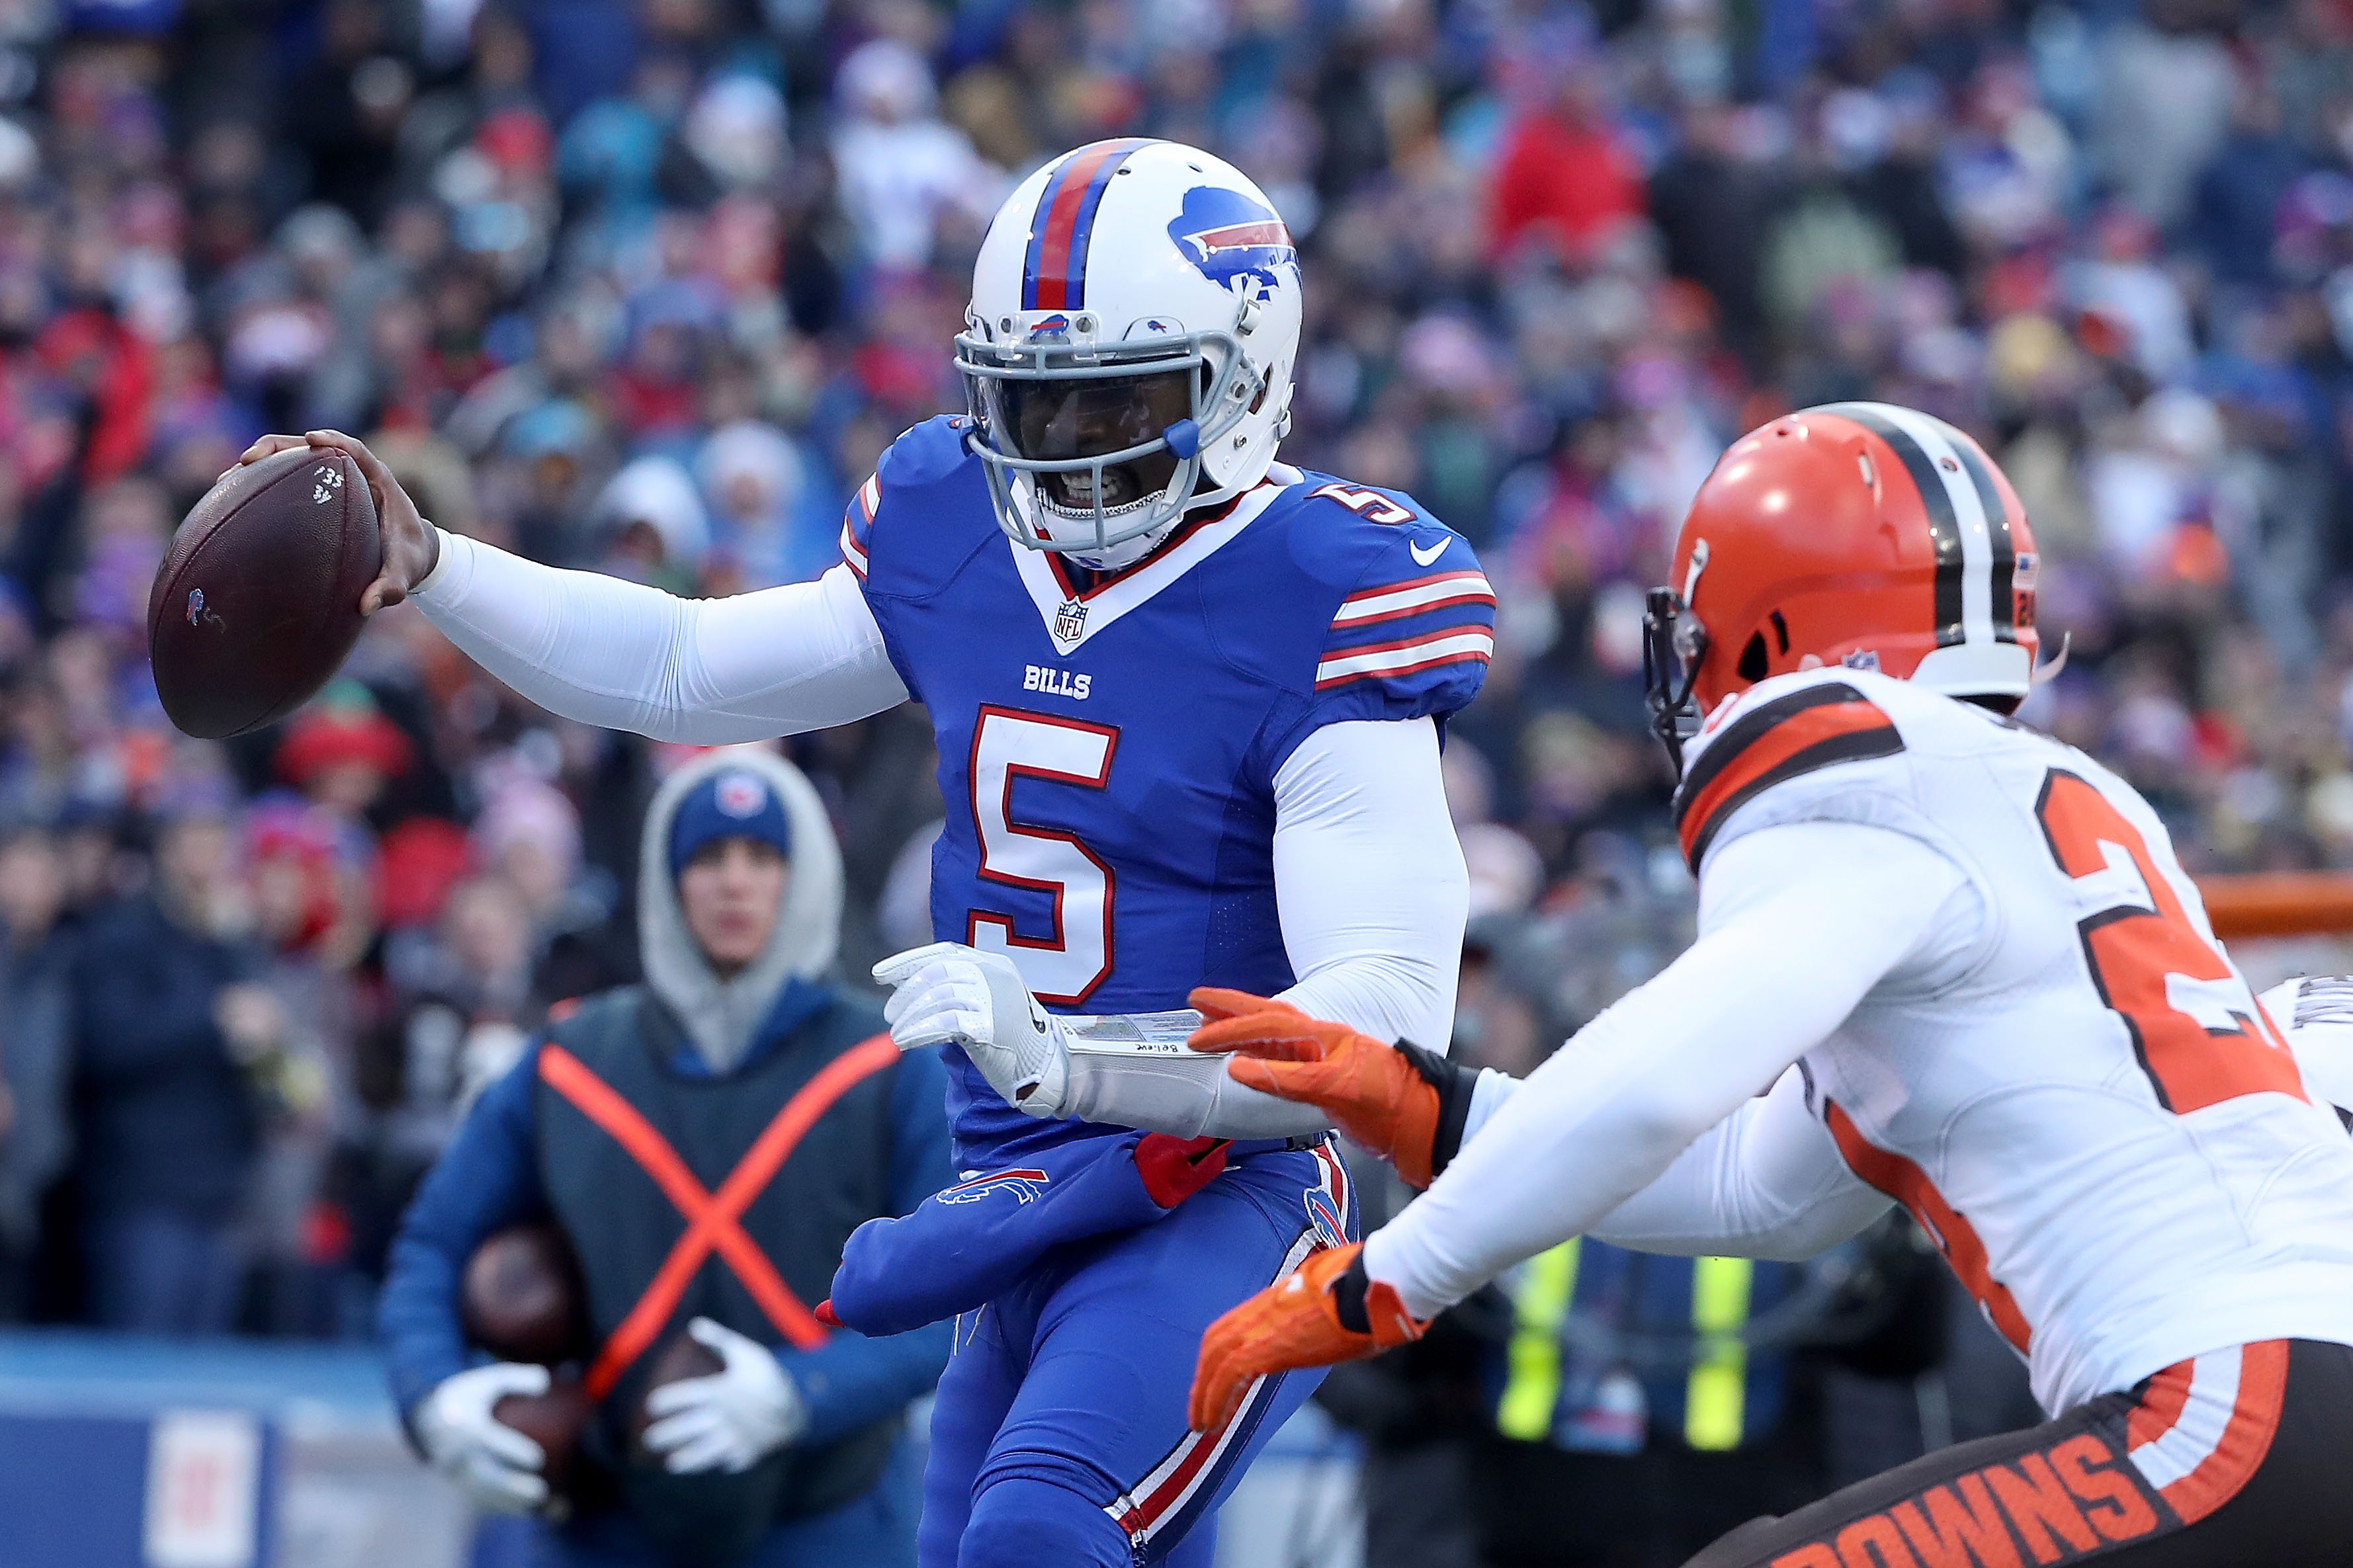 Browns LT Joe Thomas compares Tyrod Taylor to Russell Wilson